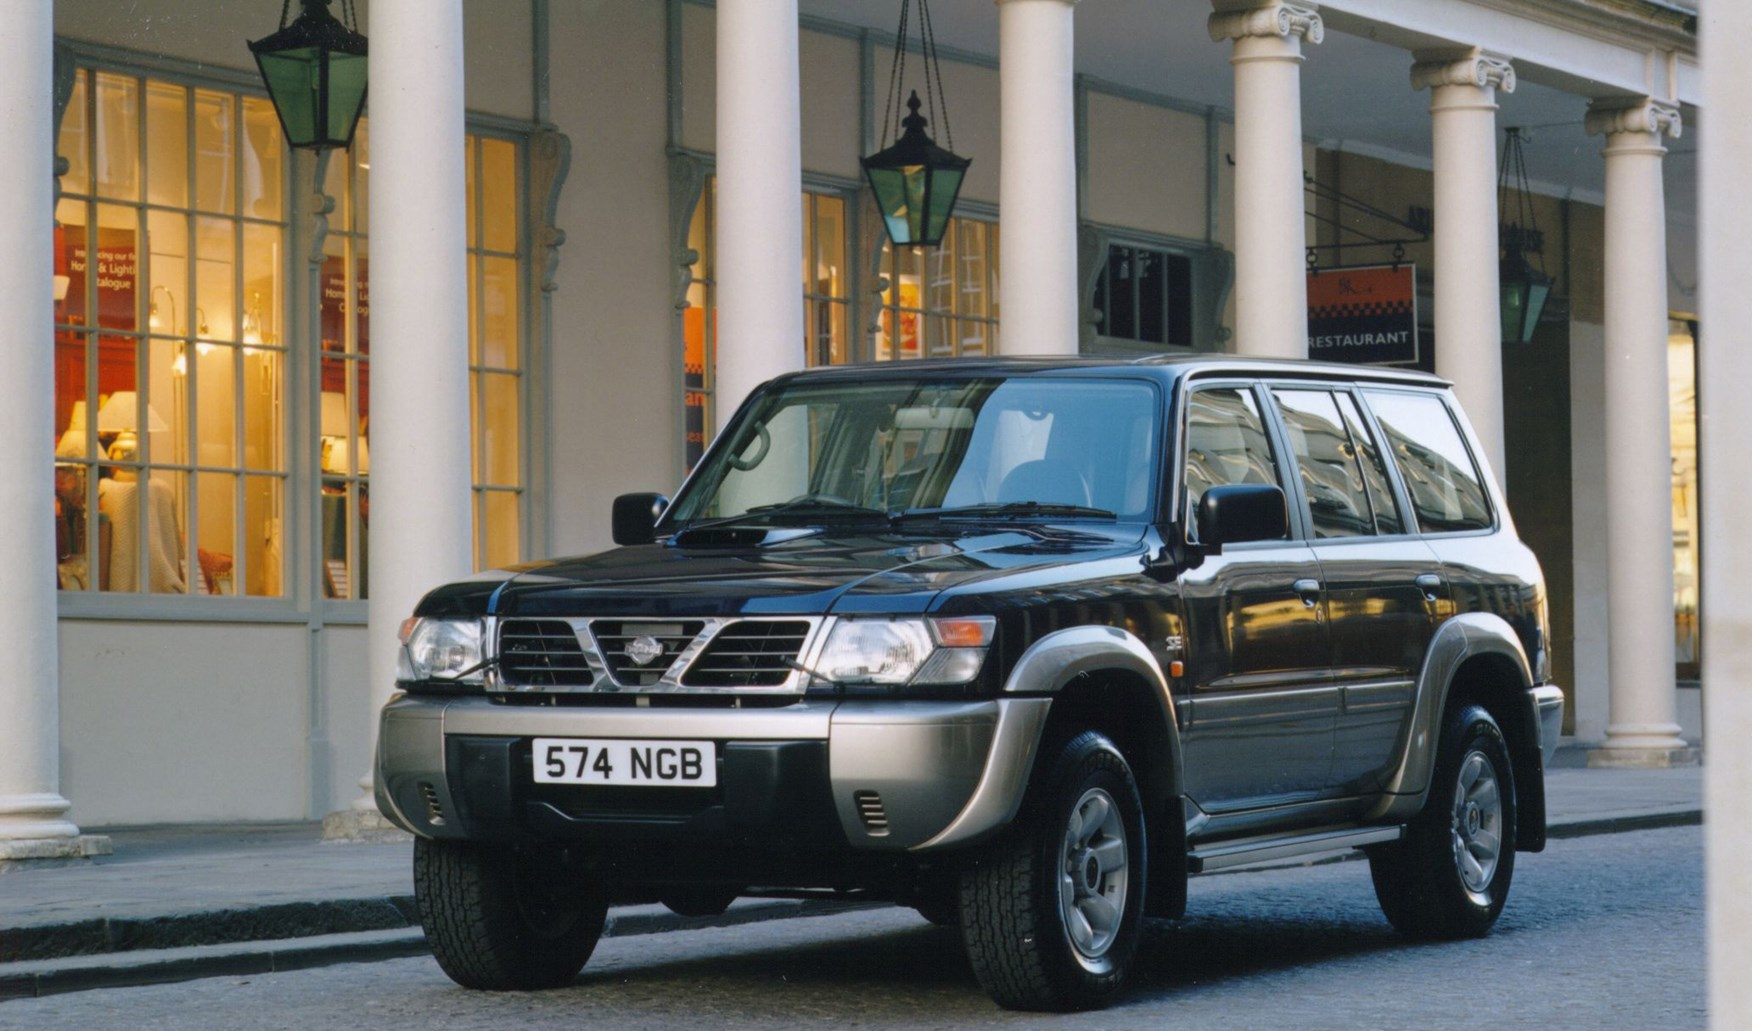 Nissan Patrol Station Wagon Review (1998 - 2009) | Parkers